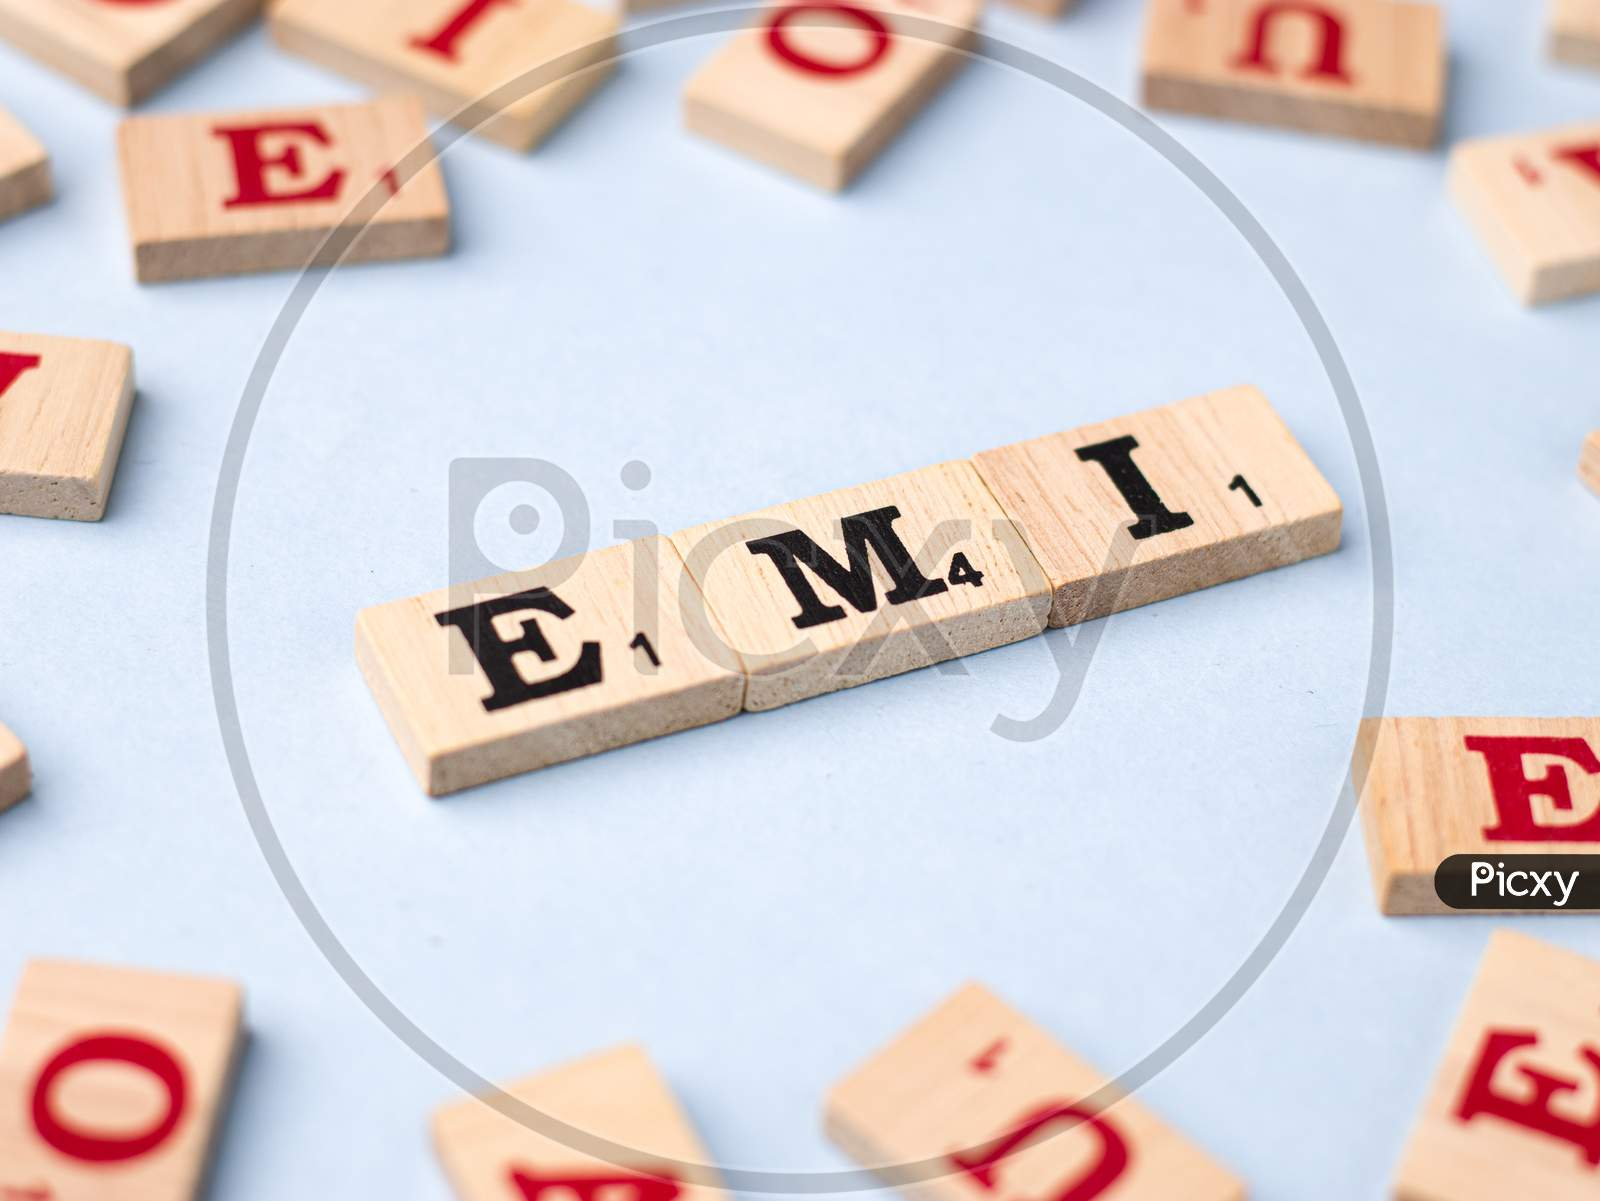 Assam, india - March 30, 2021 : Word EMI written on wooden cubes stock image.